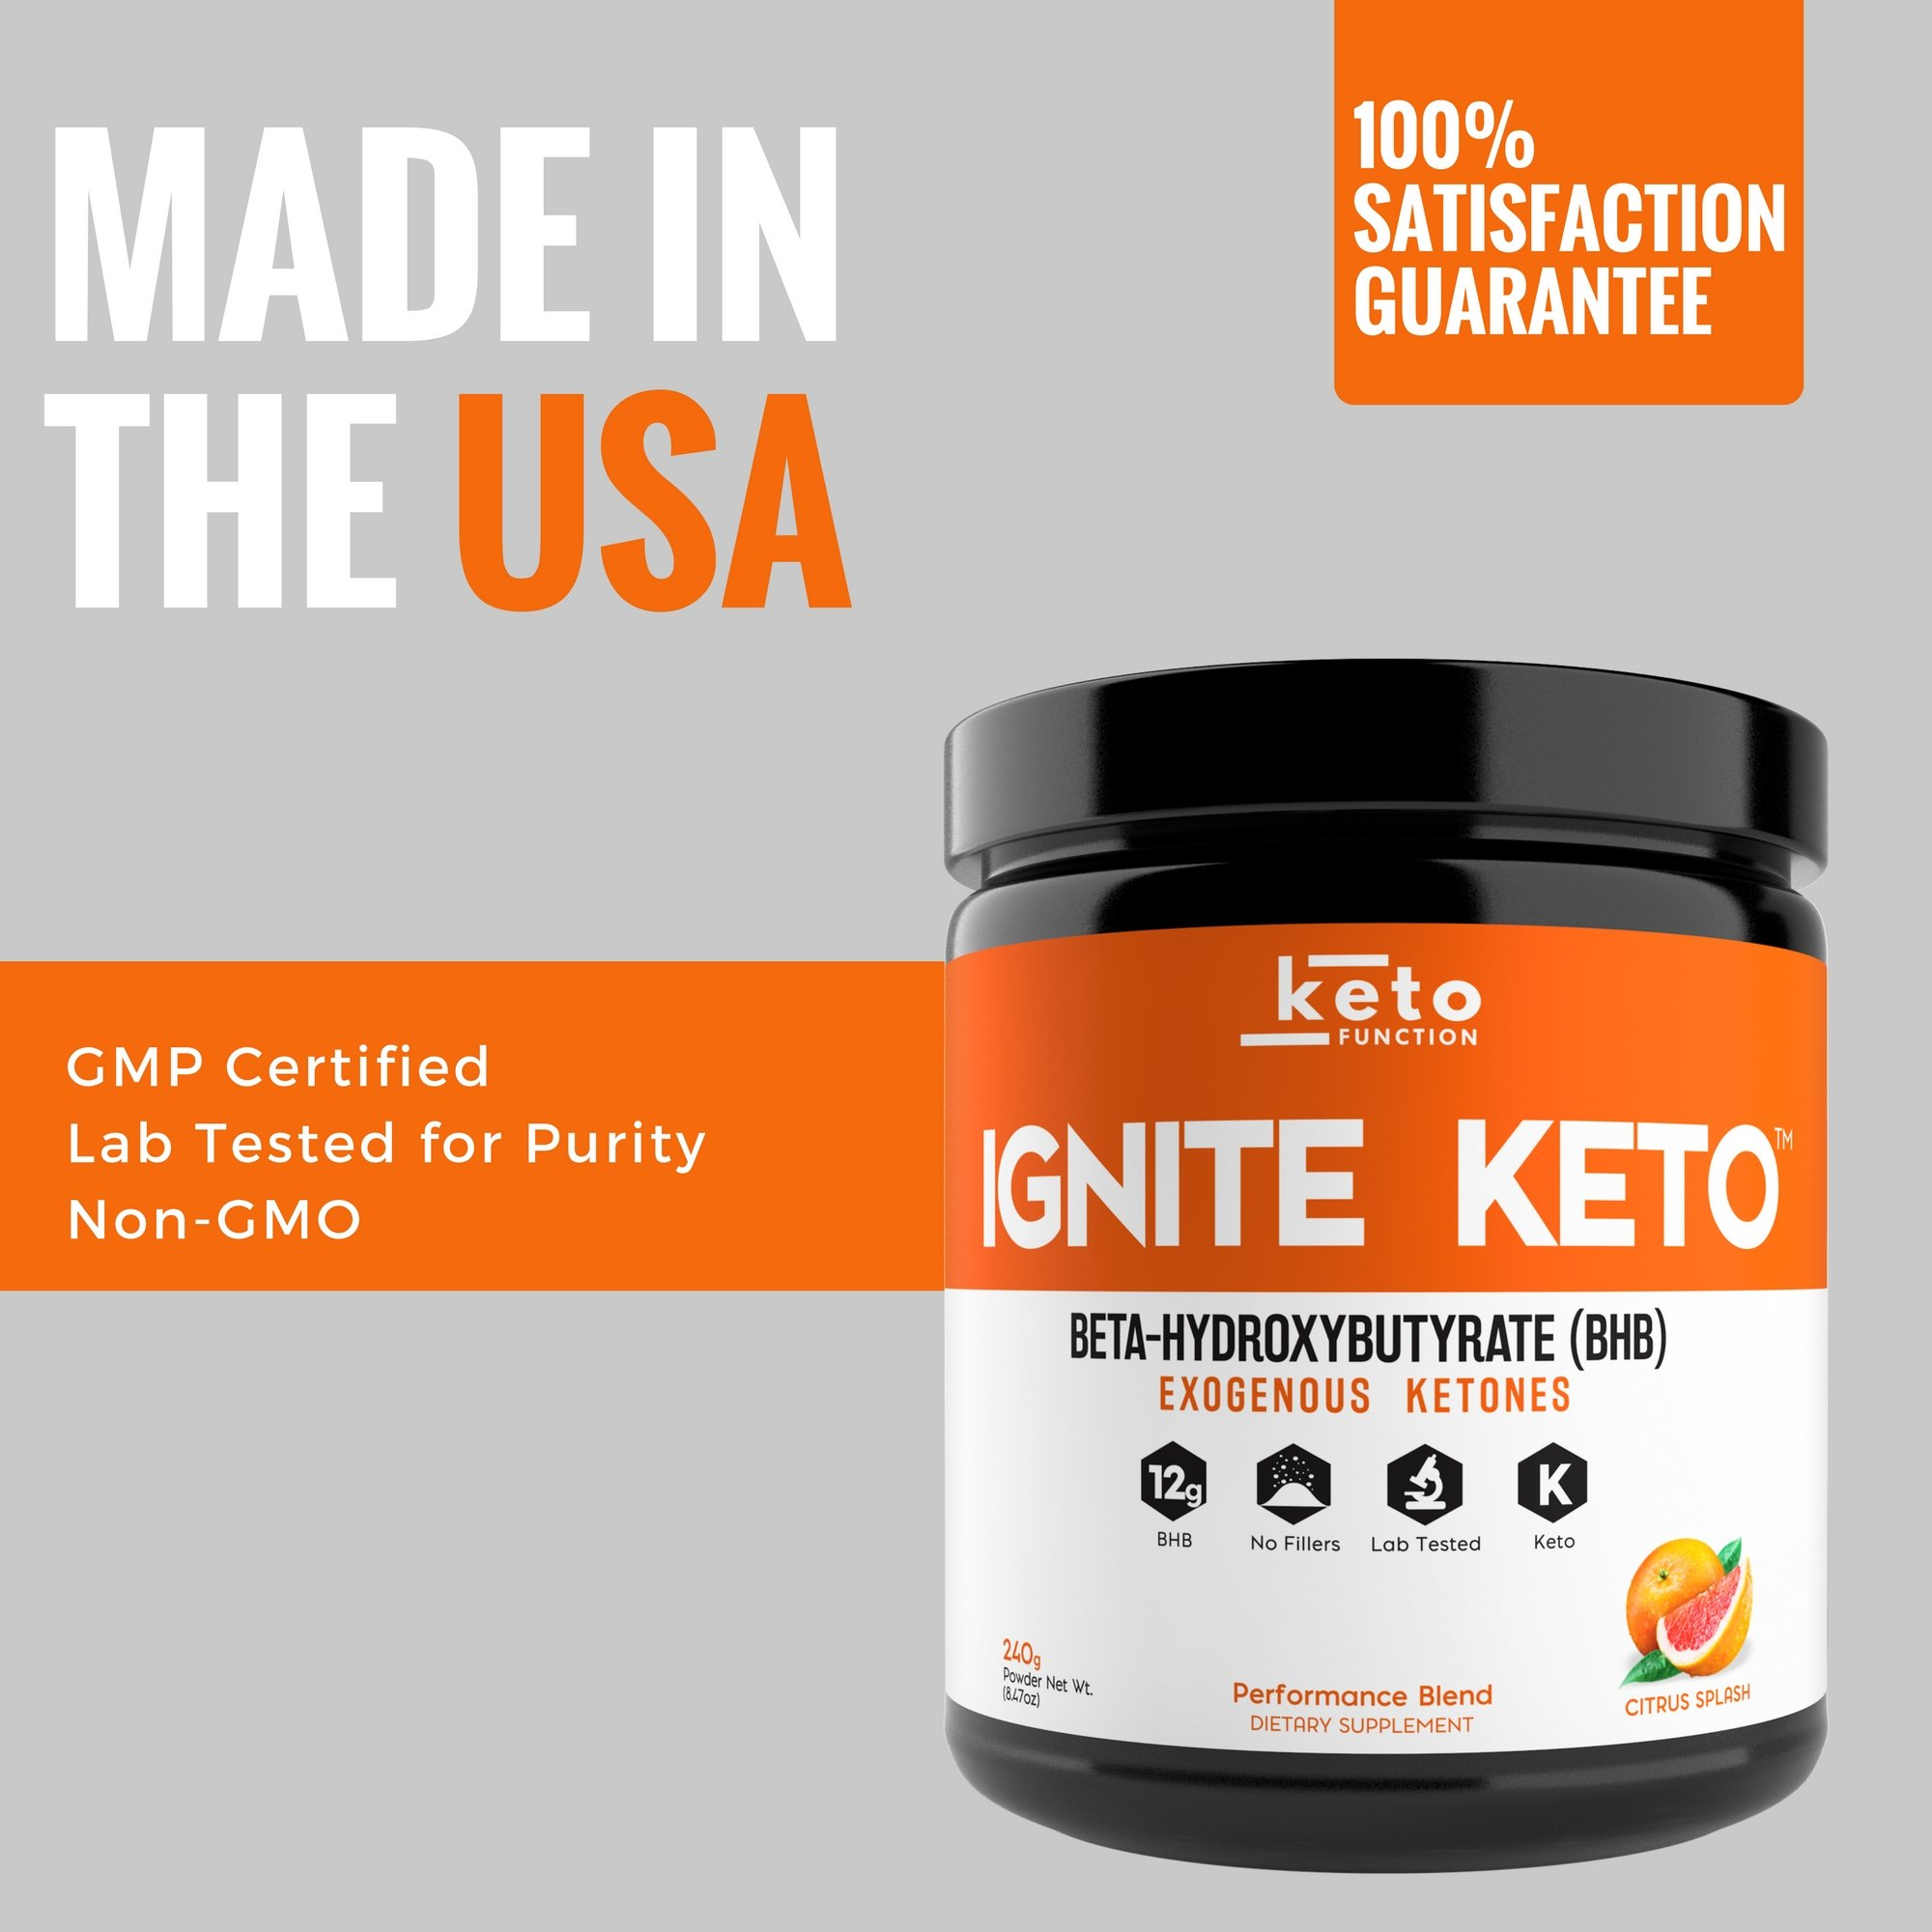 IGNITE KETO Drink - Instant Exogenous Ketones Supplement - 12g Pure BHB Salts - Fuel Ketosis, Energy, and Focus - Best goBHB Ketone Drink Powder Mix - Perfect for Low Carb Keto Diet by Keto Function (Image #9)